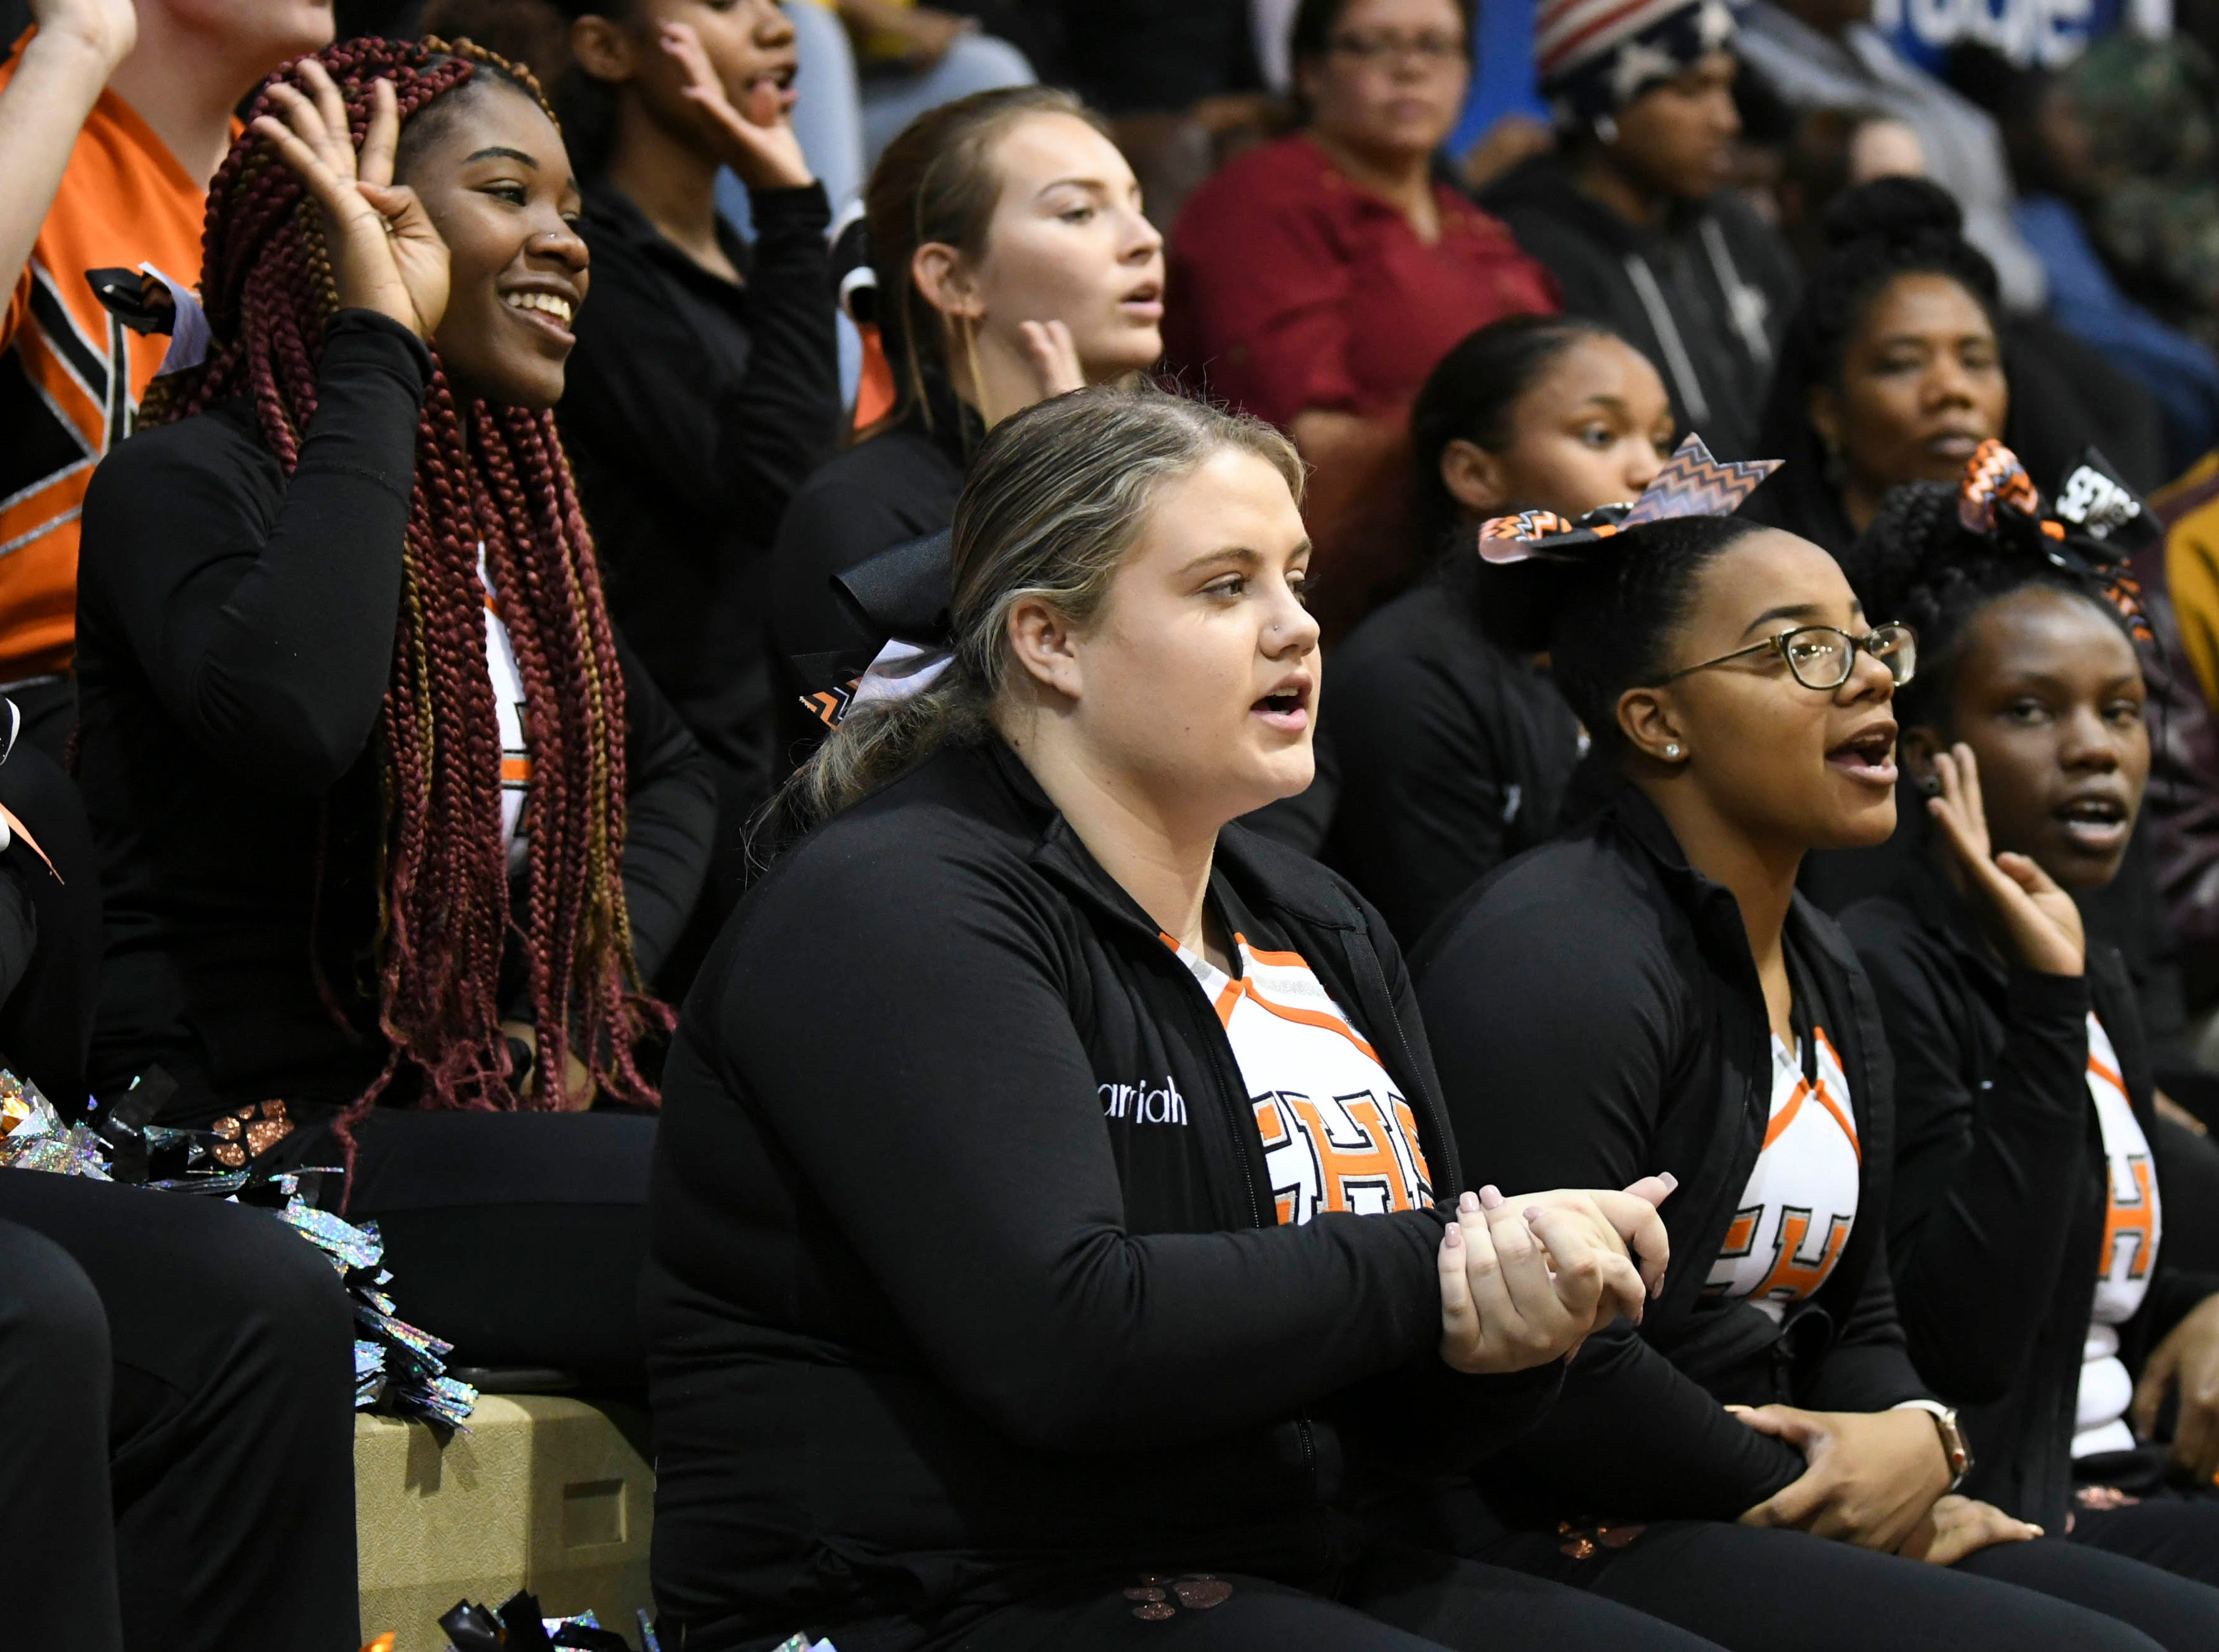 Cocoa High cheerleaders cheer for the Tigers during Tuesday's basketball game.